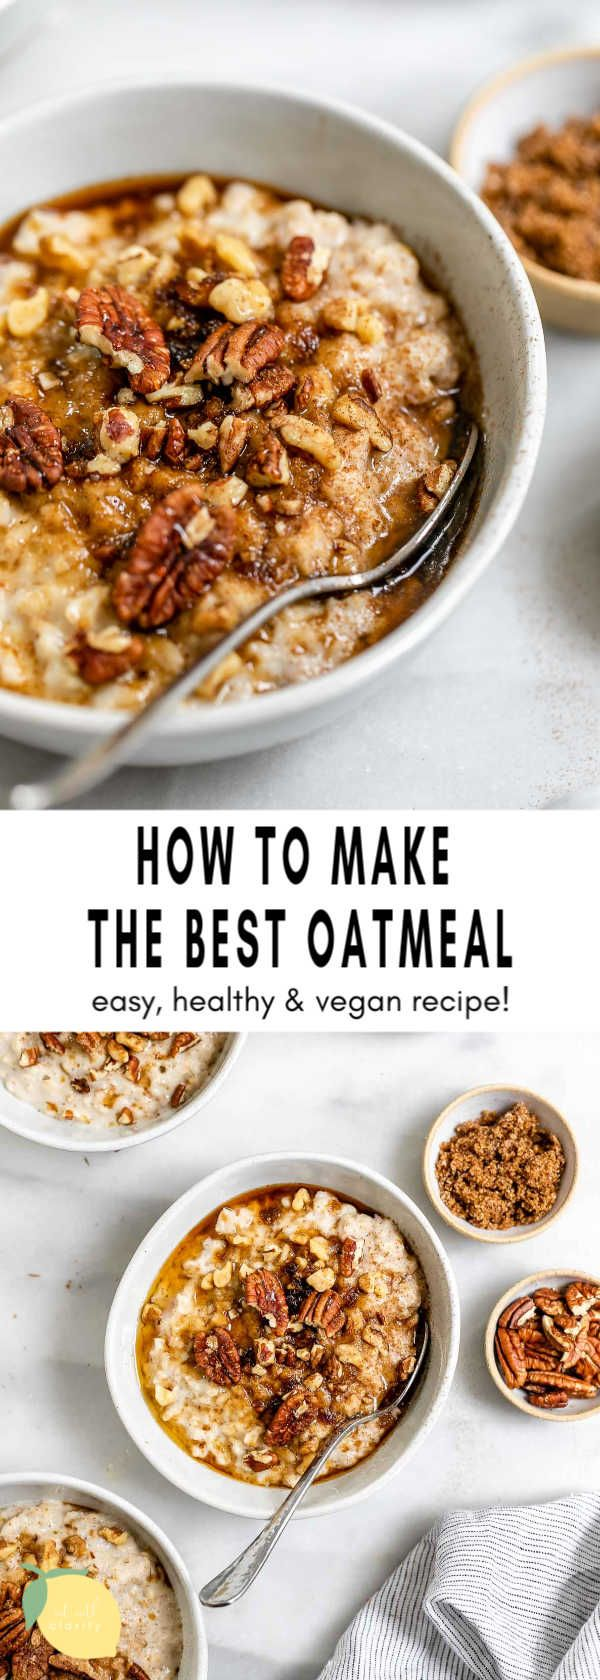 How To Make Oatmeal Easy Recipe Eat With Clarity Recipe In 2020 Easy Oatmeal Recipes Easy Oatmeal Recipes Breakfast Healthy Oatmeal Recipes